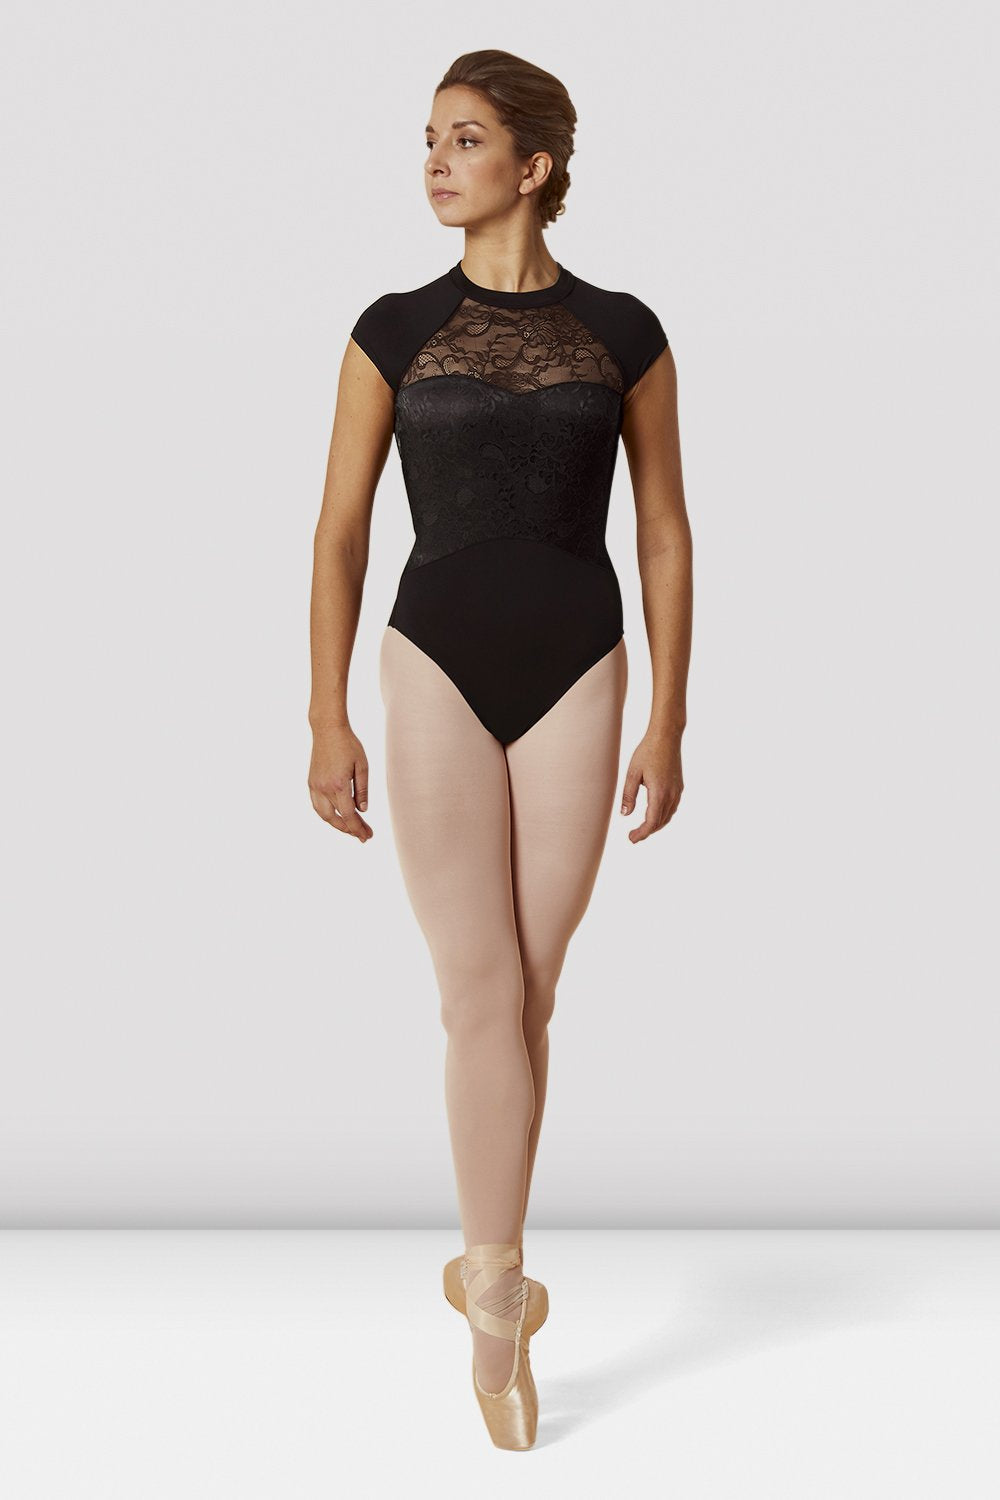 Black Bloch Ladies High Neckline Lace Open Back Cap Sleeve Leotard on female model en pointe in fifth position